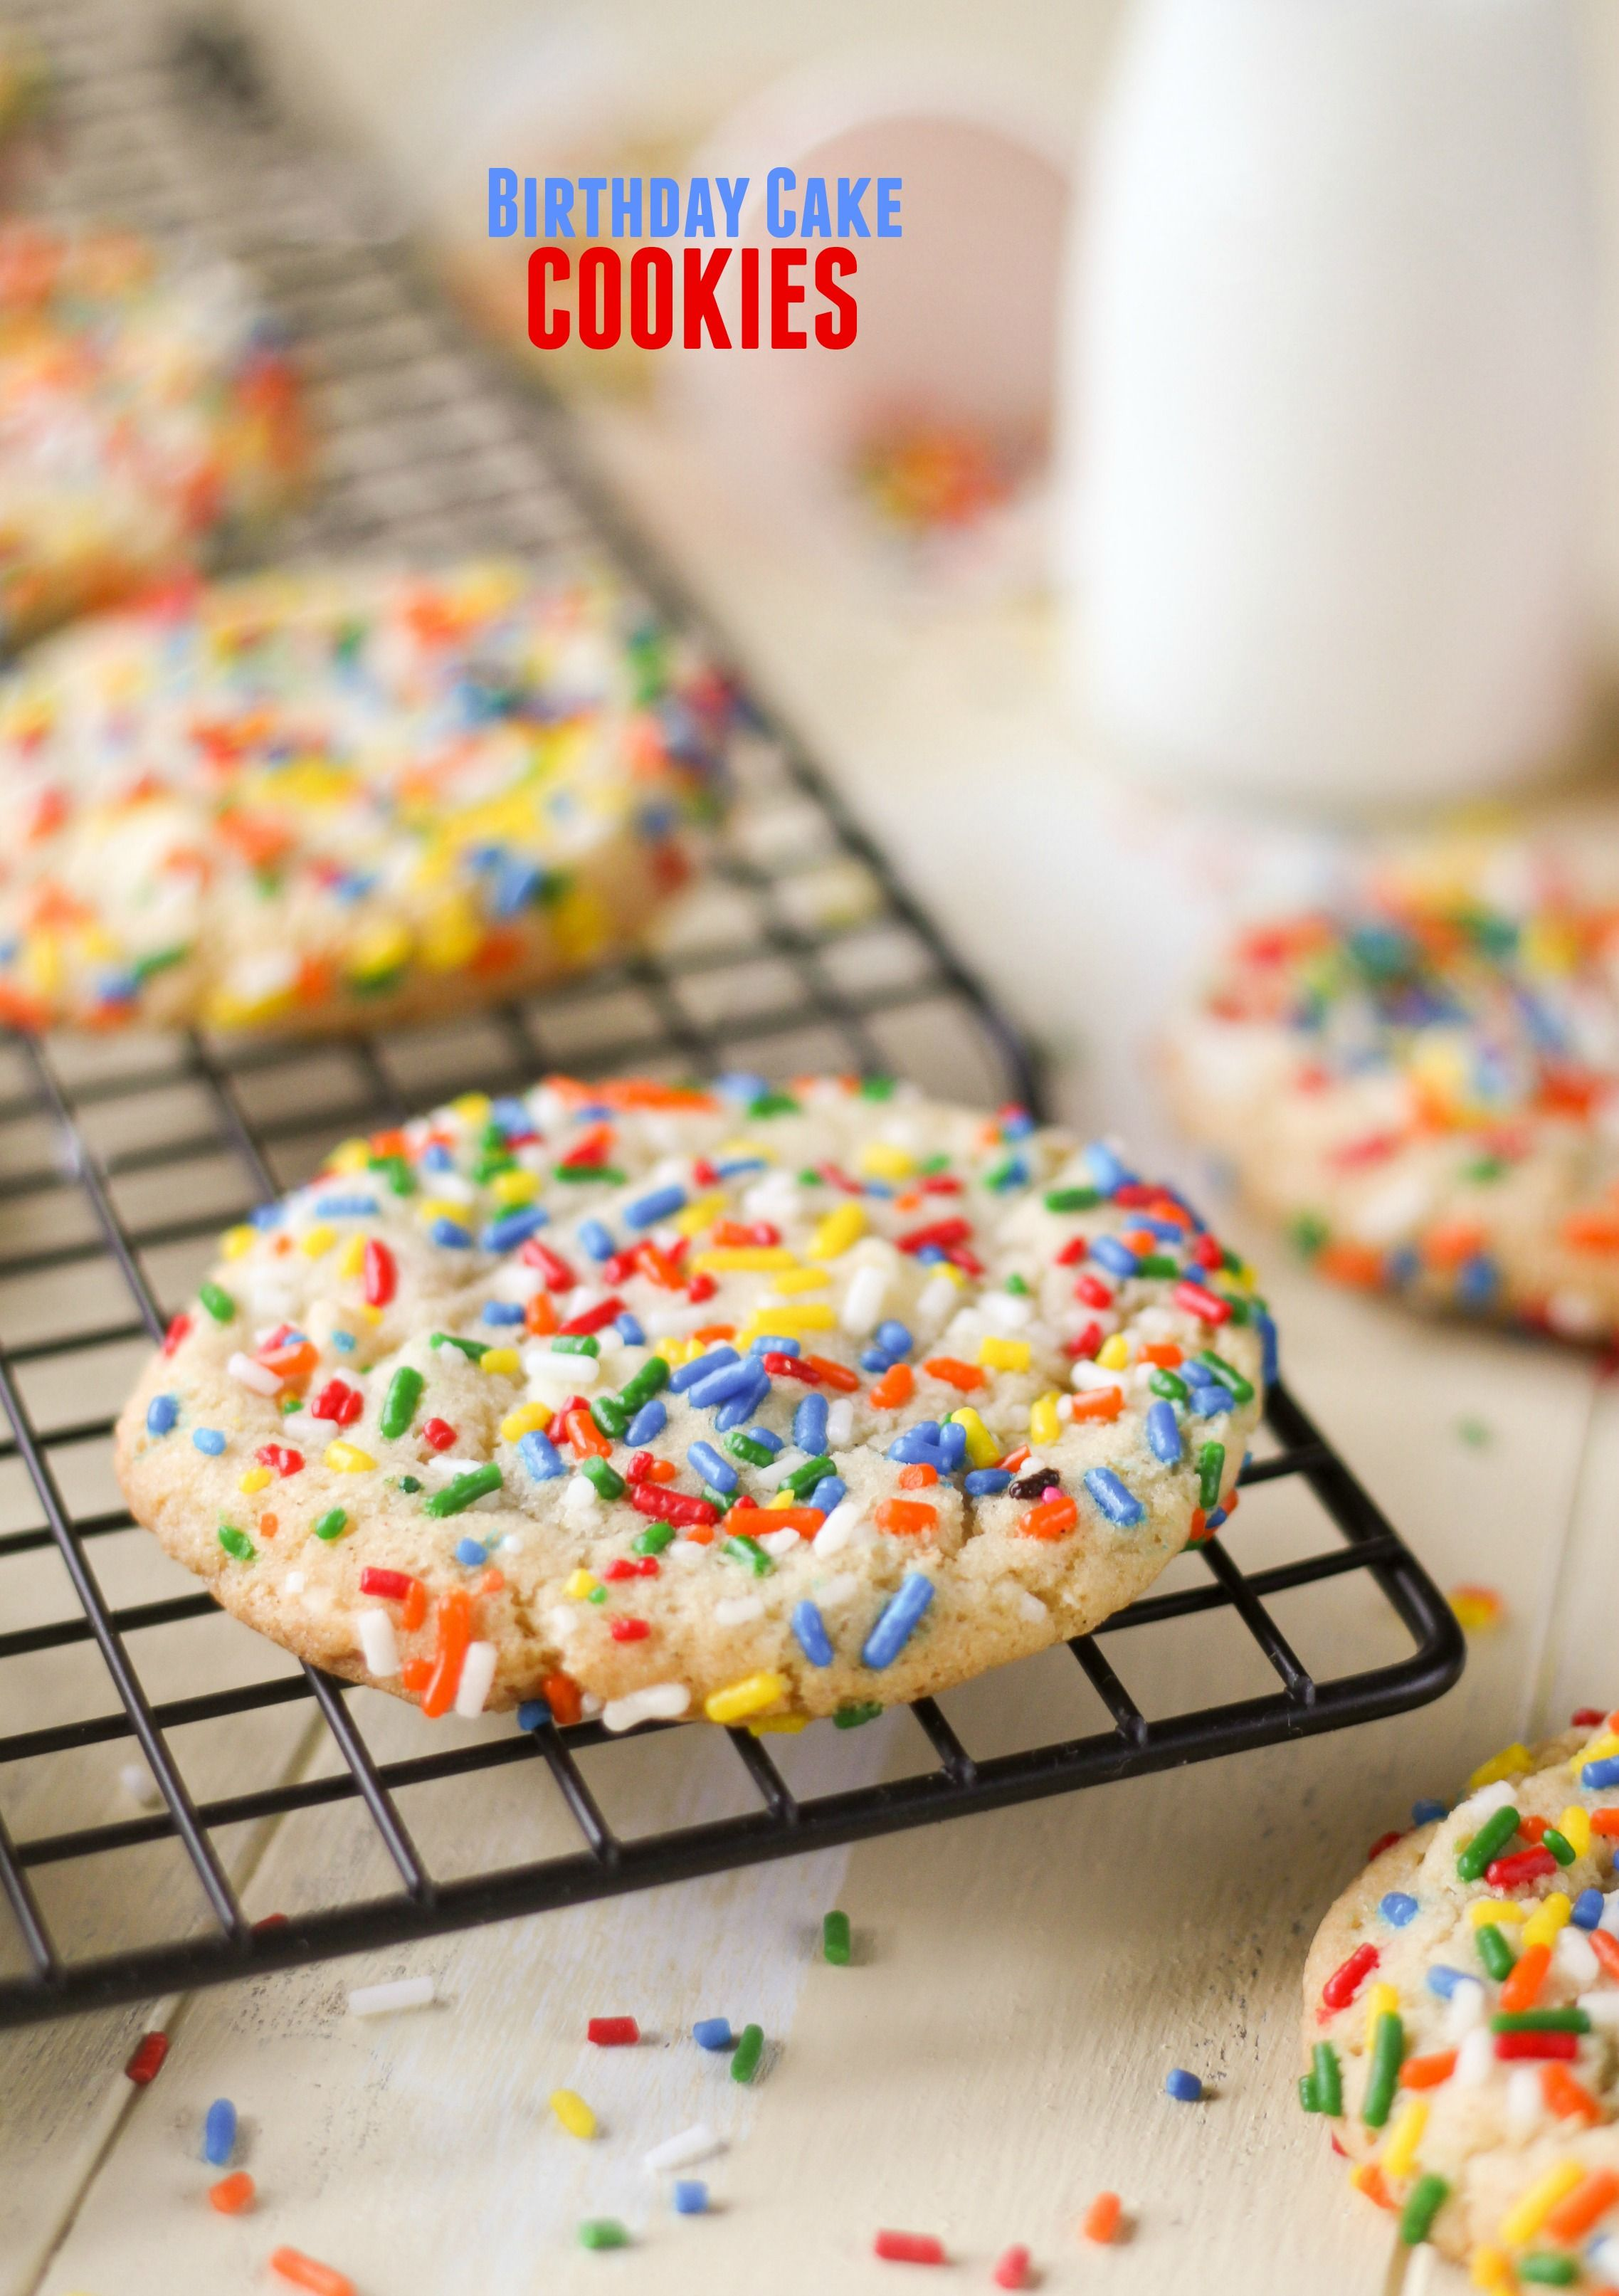 If You Love The Birthday Cake Cookies Get At Great American Cookie Company Youll This Recipe They Taste Identical For A Fraction Of